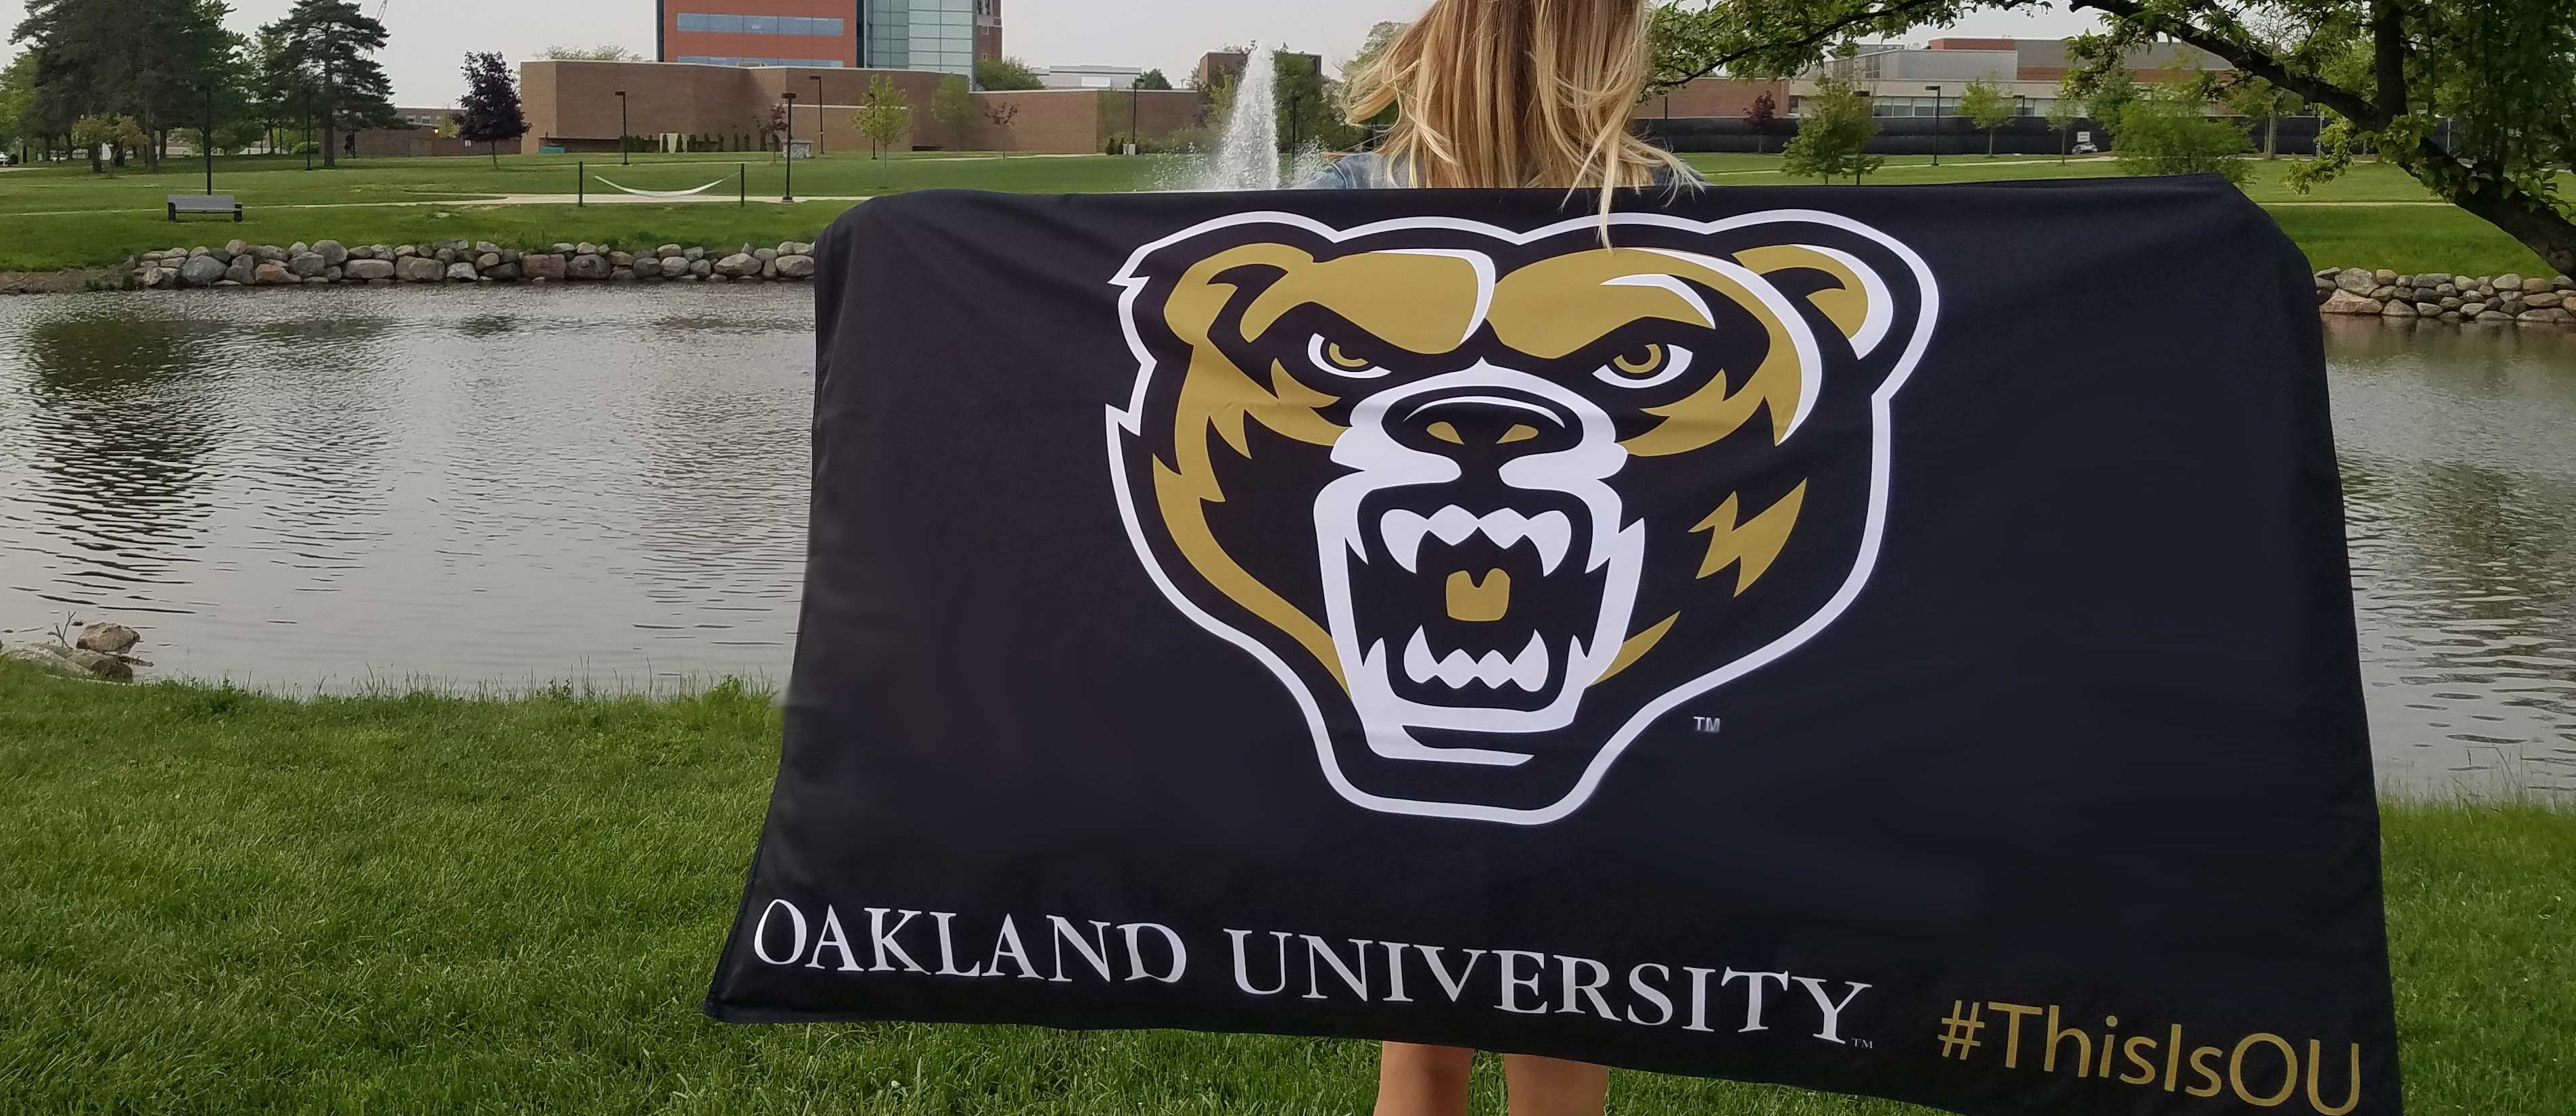 Woman holding a 3-foot by 5-foot flag in front of Bear Lake. Flag has the bear head and Oakland University #ThisIsOU printed on it.